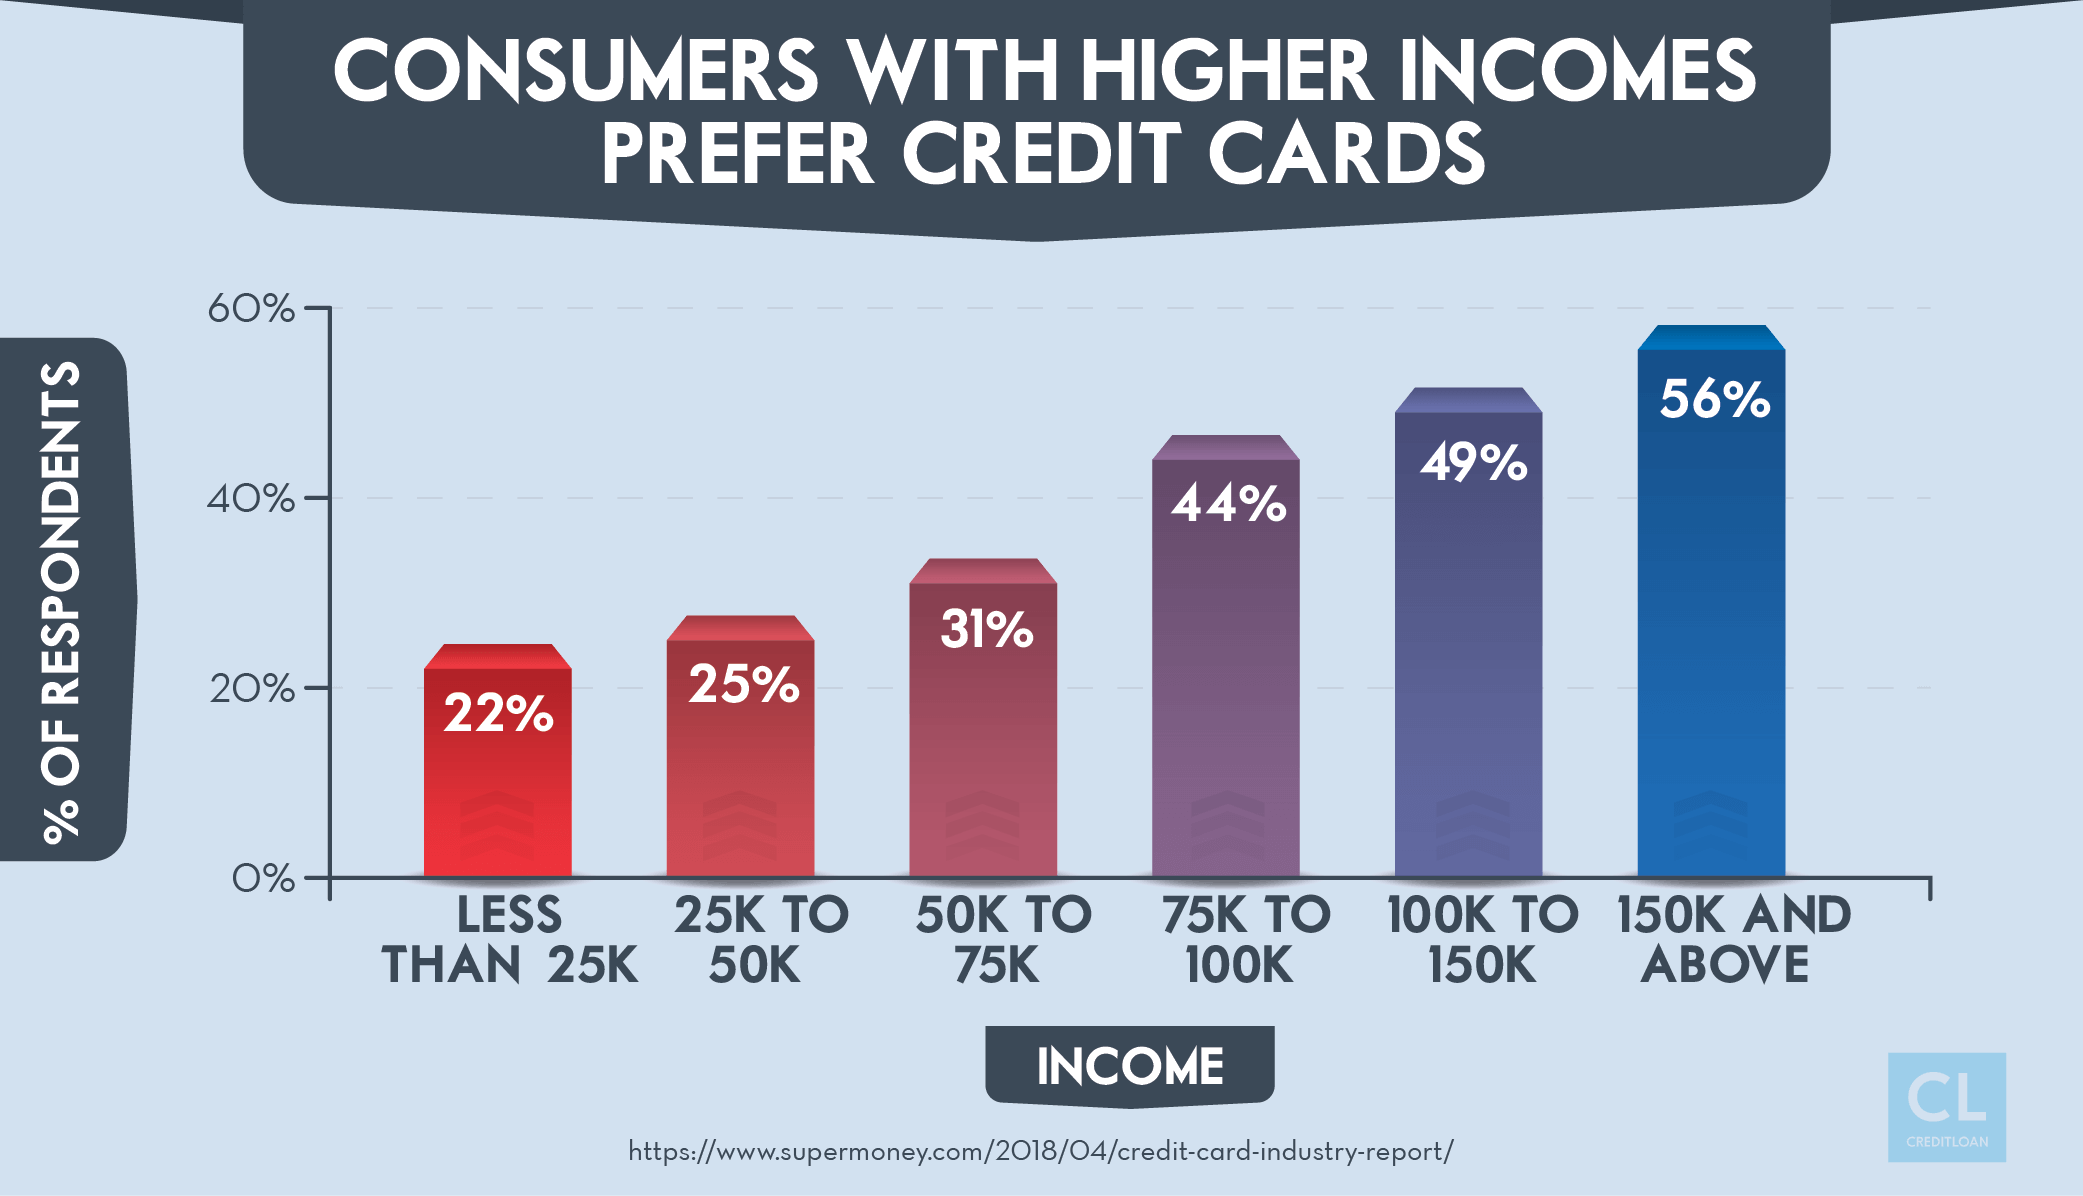 Consumers with higher incomes prefer credit cards